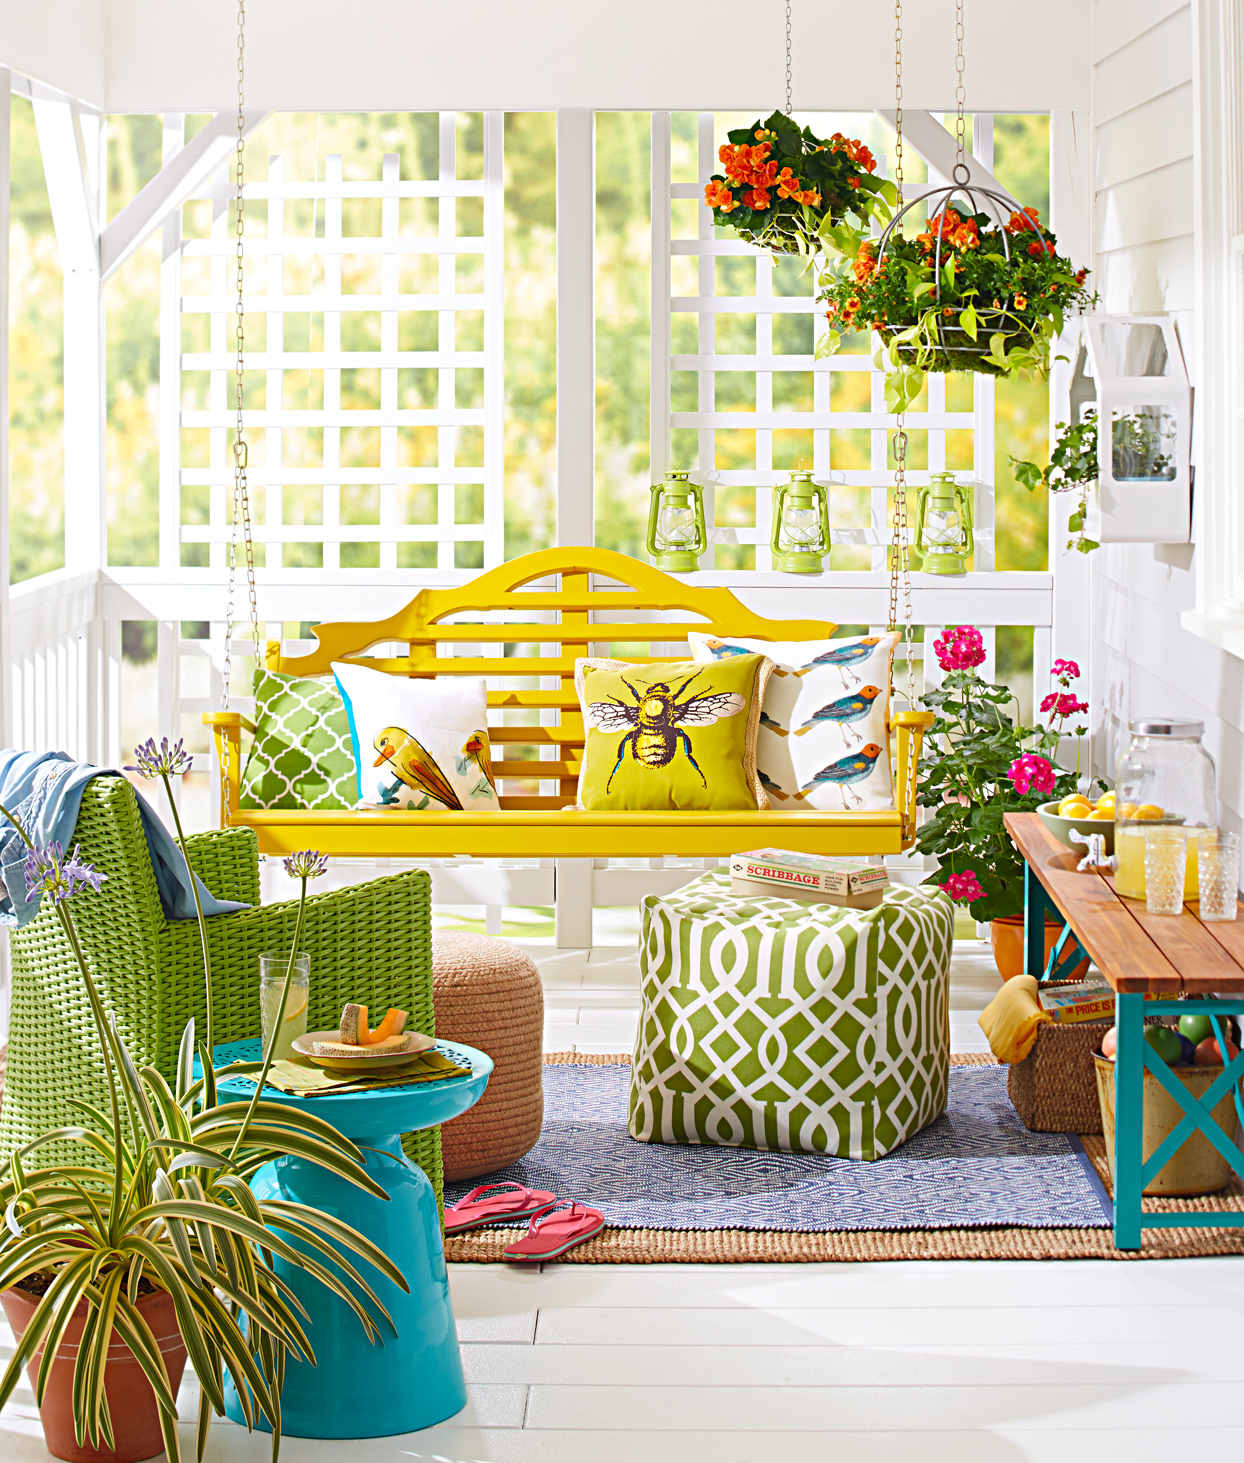 porch yellow swing bold patterns colors decor